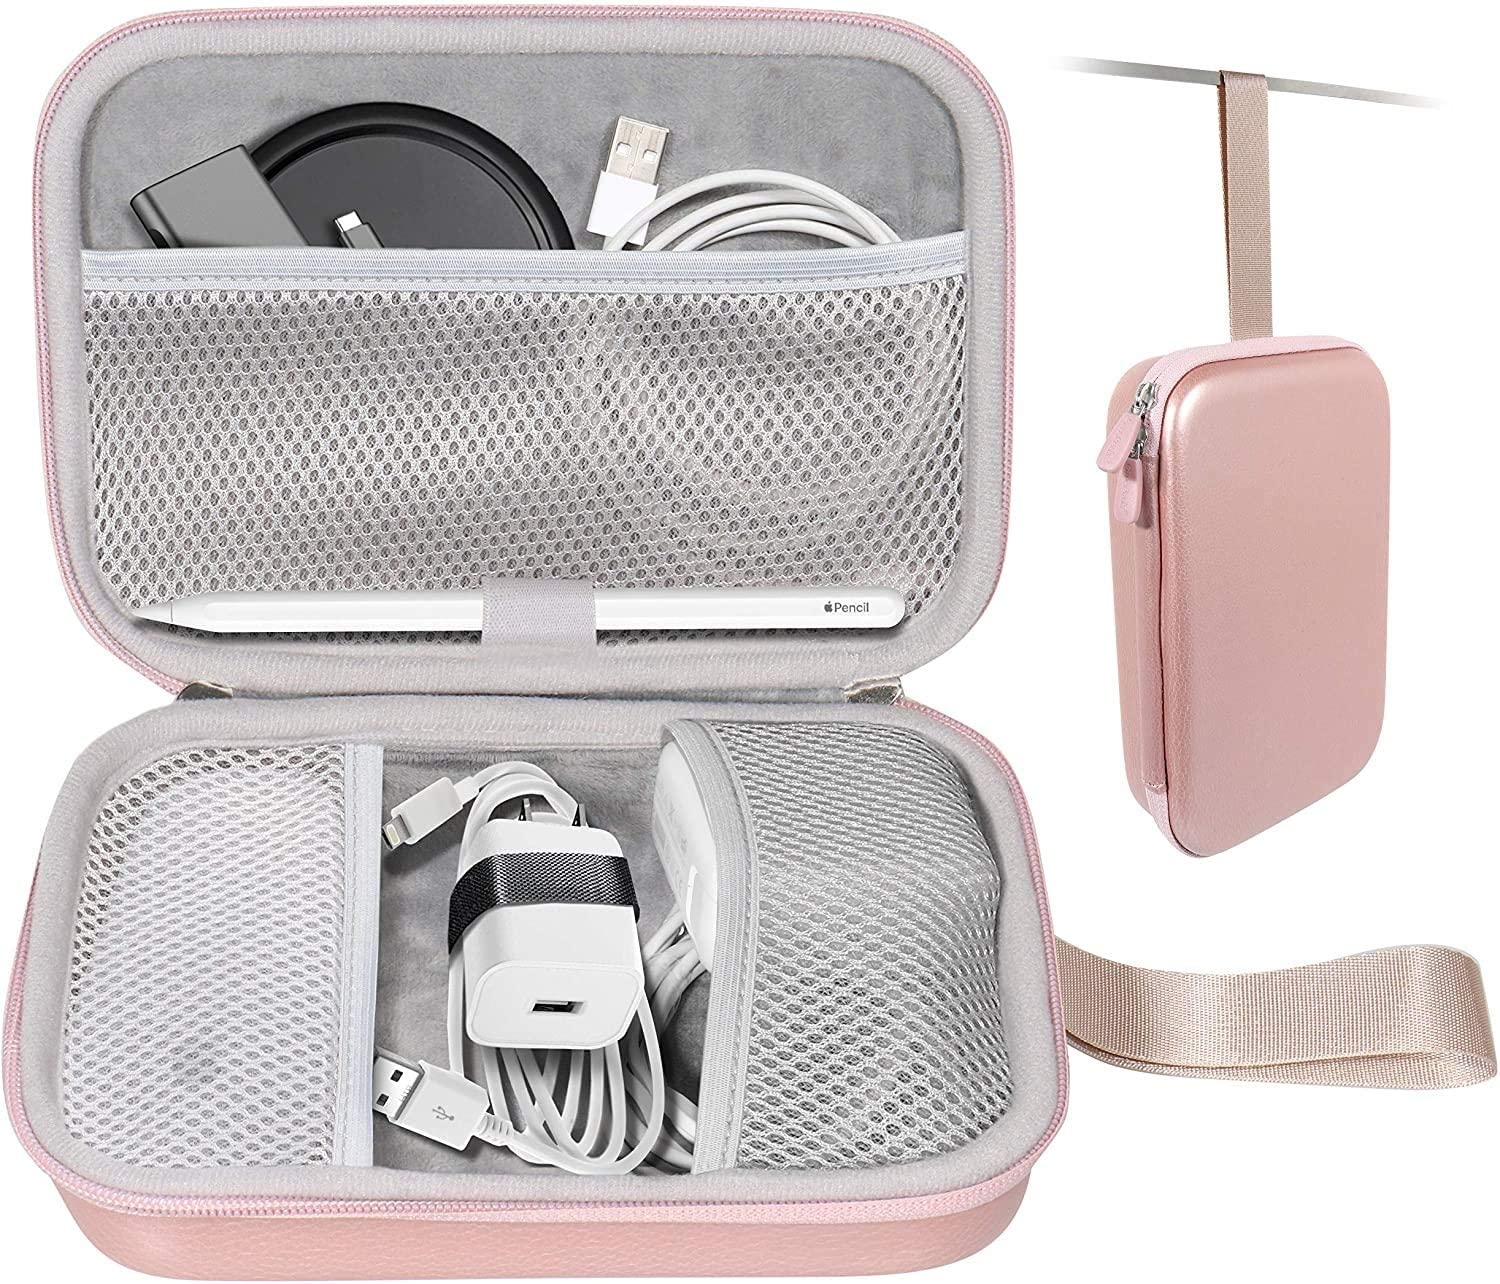 MacBook Accessories All in one Case by CaseSack, compartments for MagSafe 2 Power Adapter, MagSafe Charger , Magic Mouse 2/1, Apple Pen 2/1, iPhone Charger, Lightning Hub, USB C Hub, Type C Hub